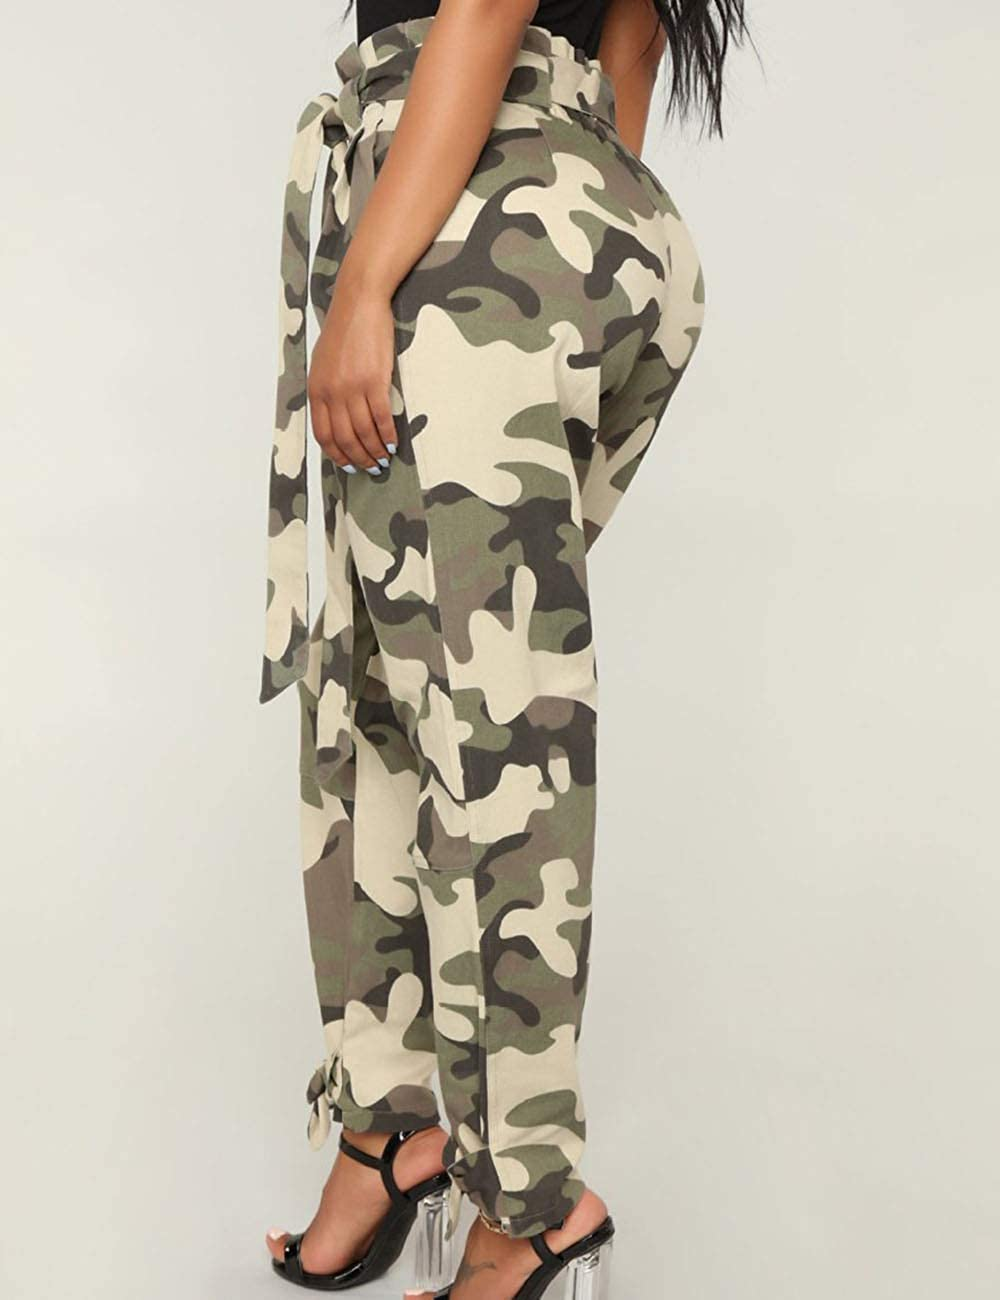 Womens Loose Camouflage Hip Hop Harem Cargo Pants 5XXL Belted Casual Camo Swaggy Leggings Pantsuits NO Belt